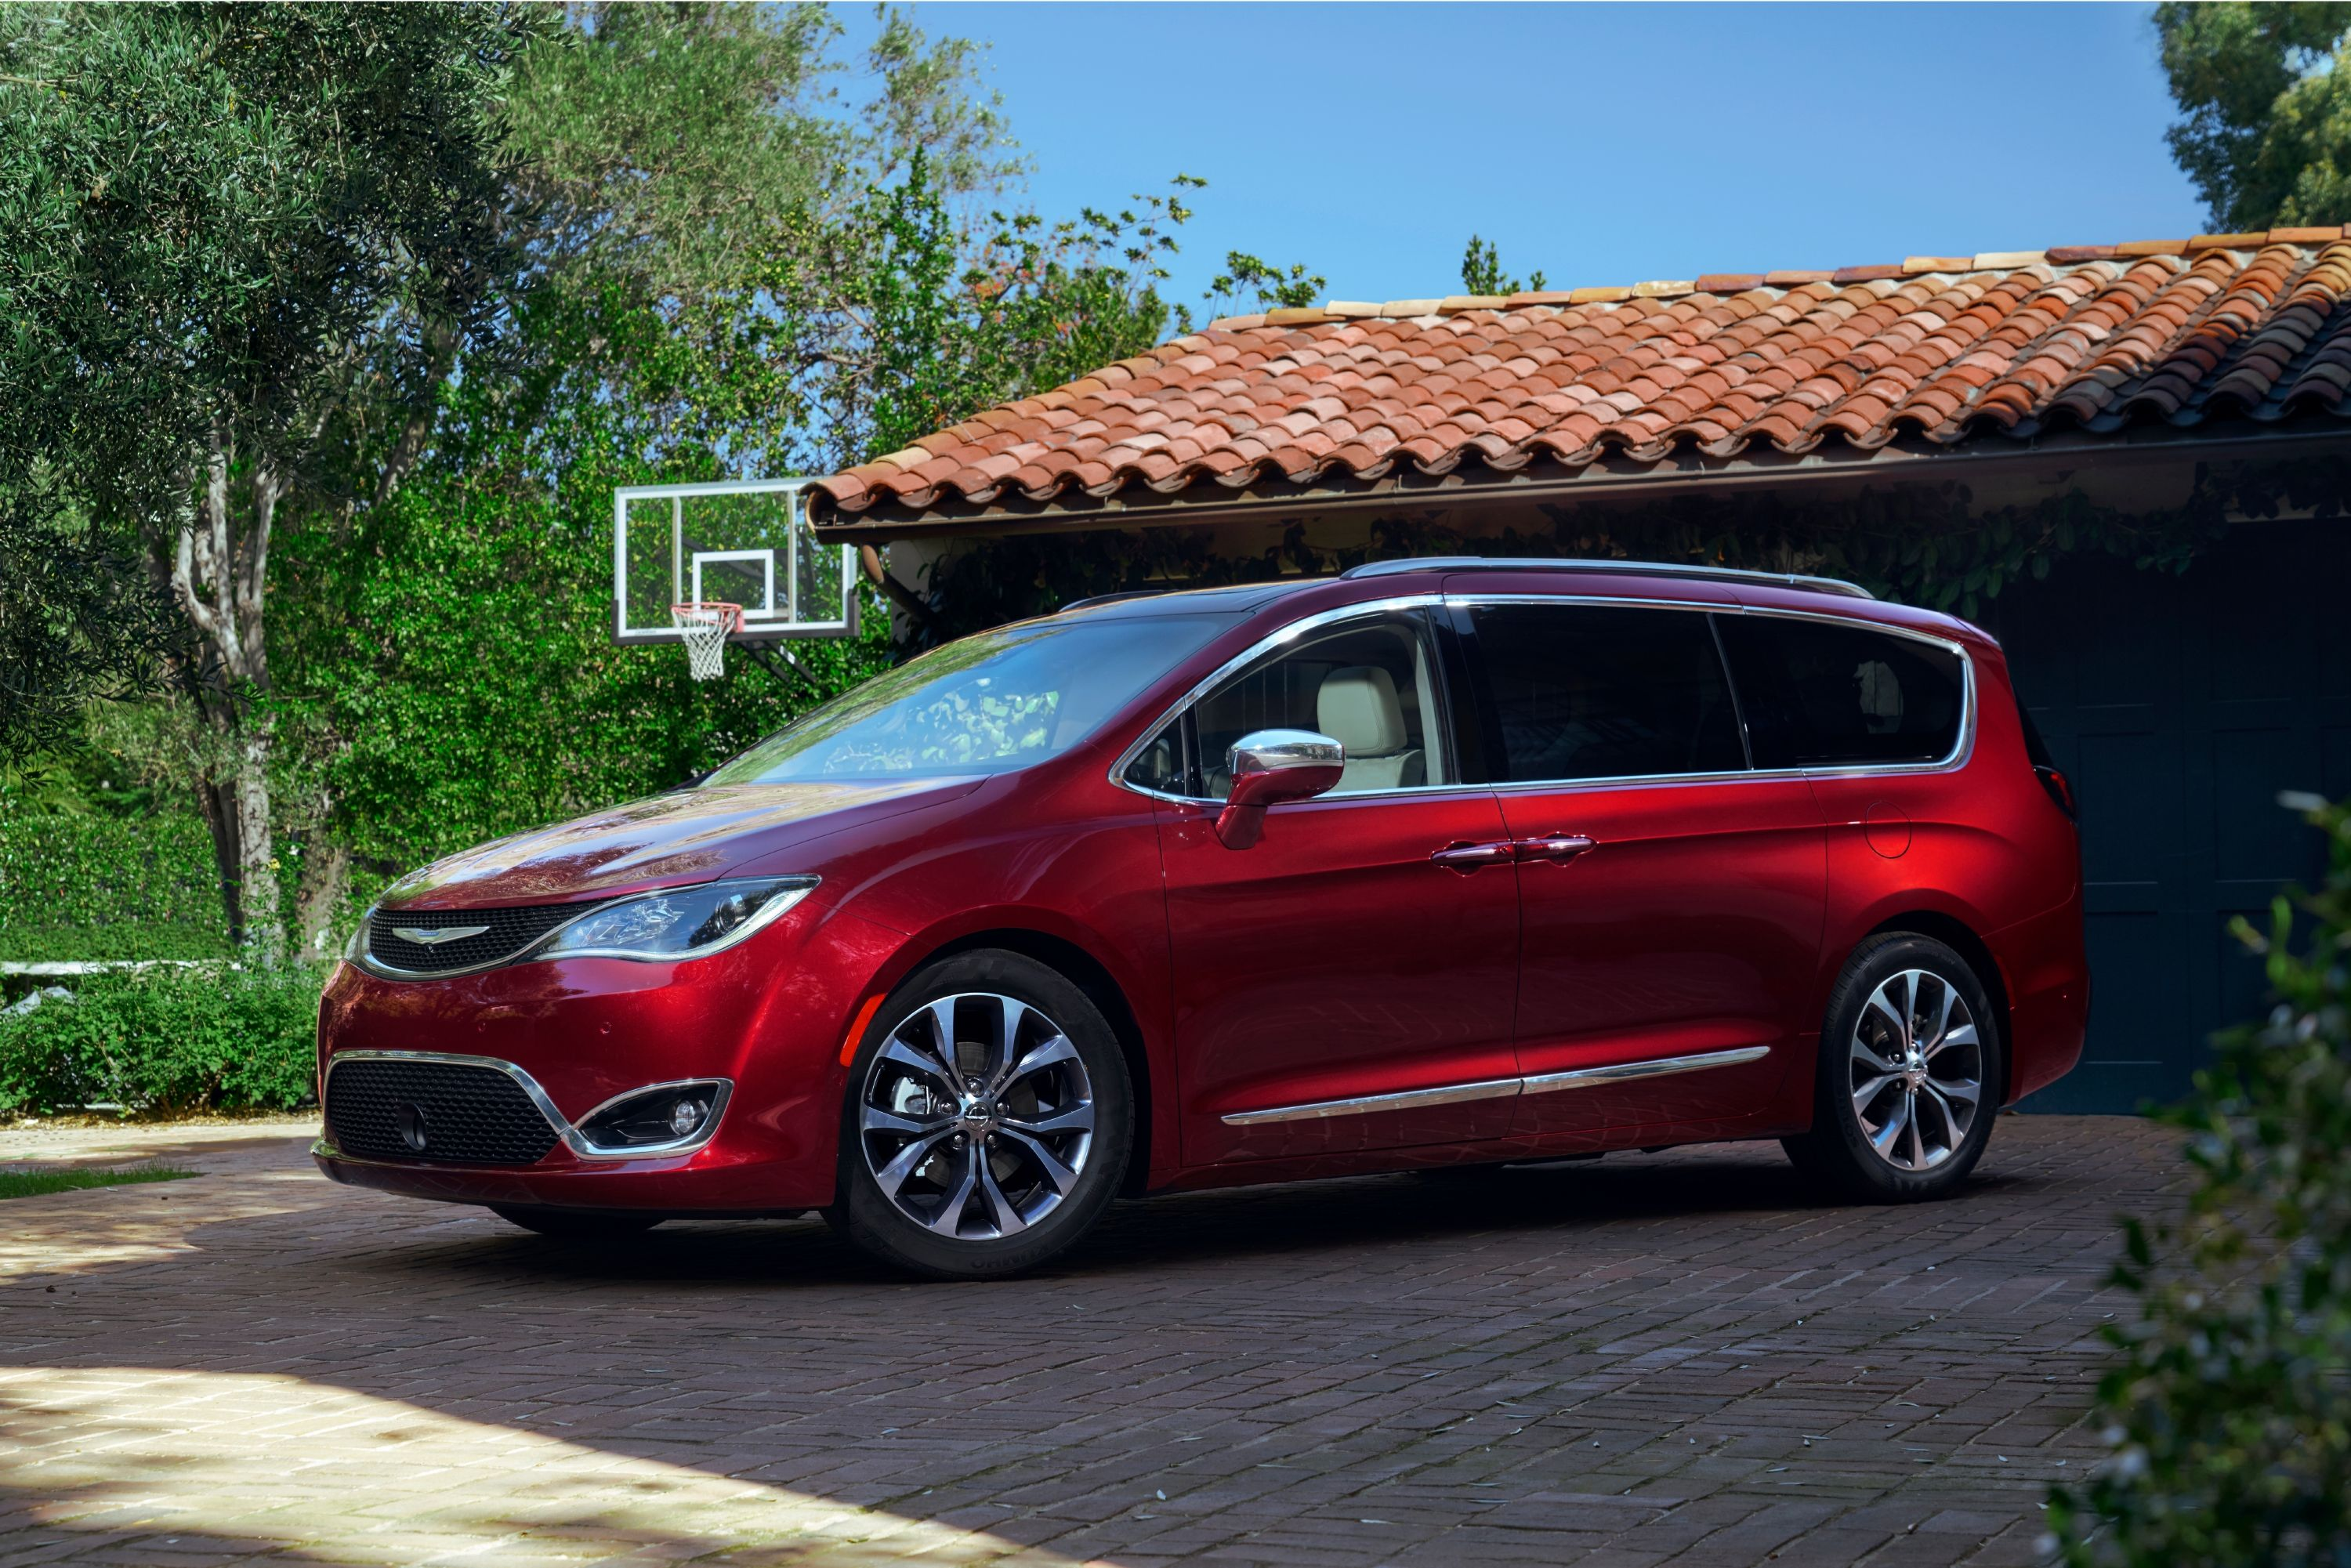 Chrysler Pacifica Hybrid Minivan Using LG Chem Battery Pack